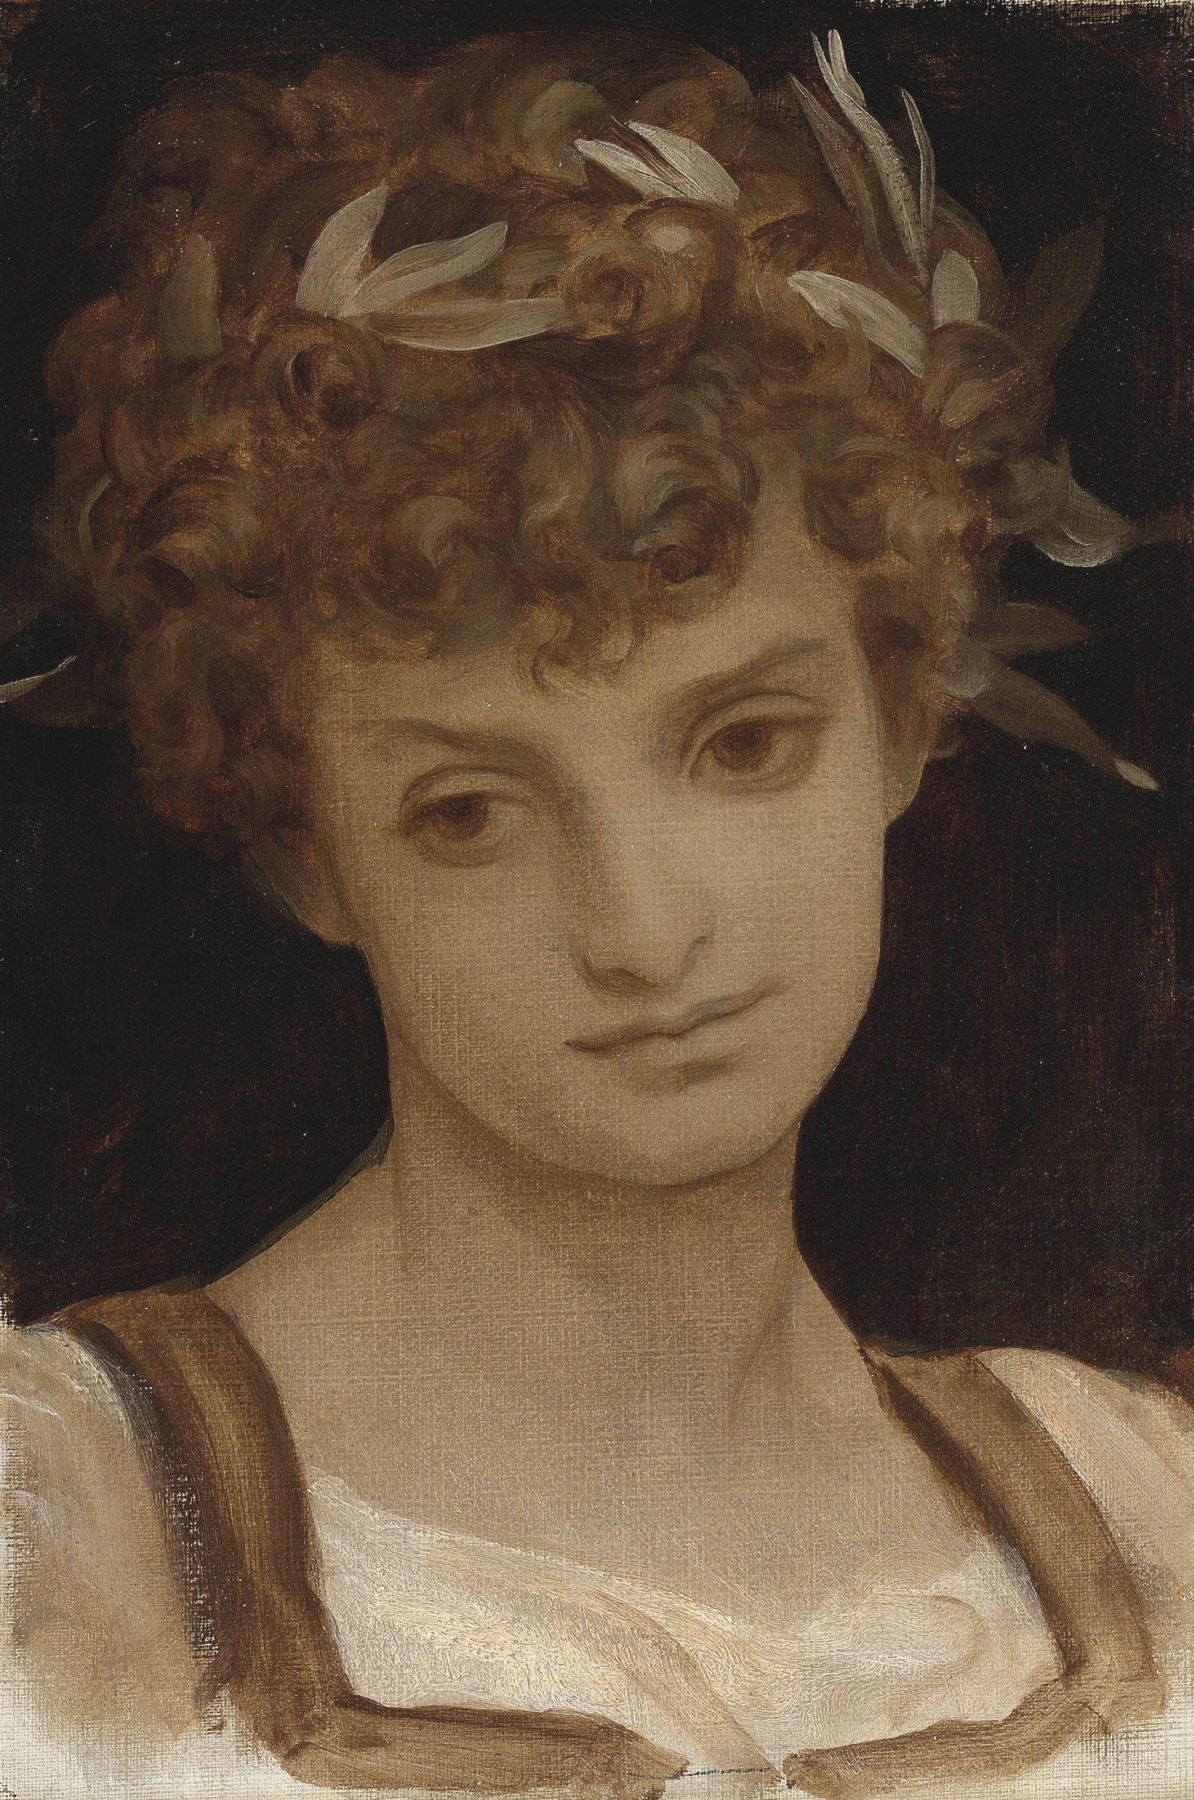 Frederic Leighton. Study of a Girl's Head